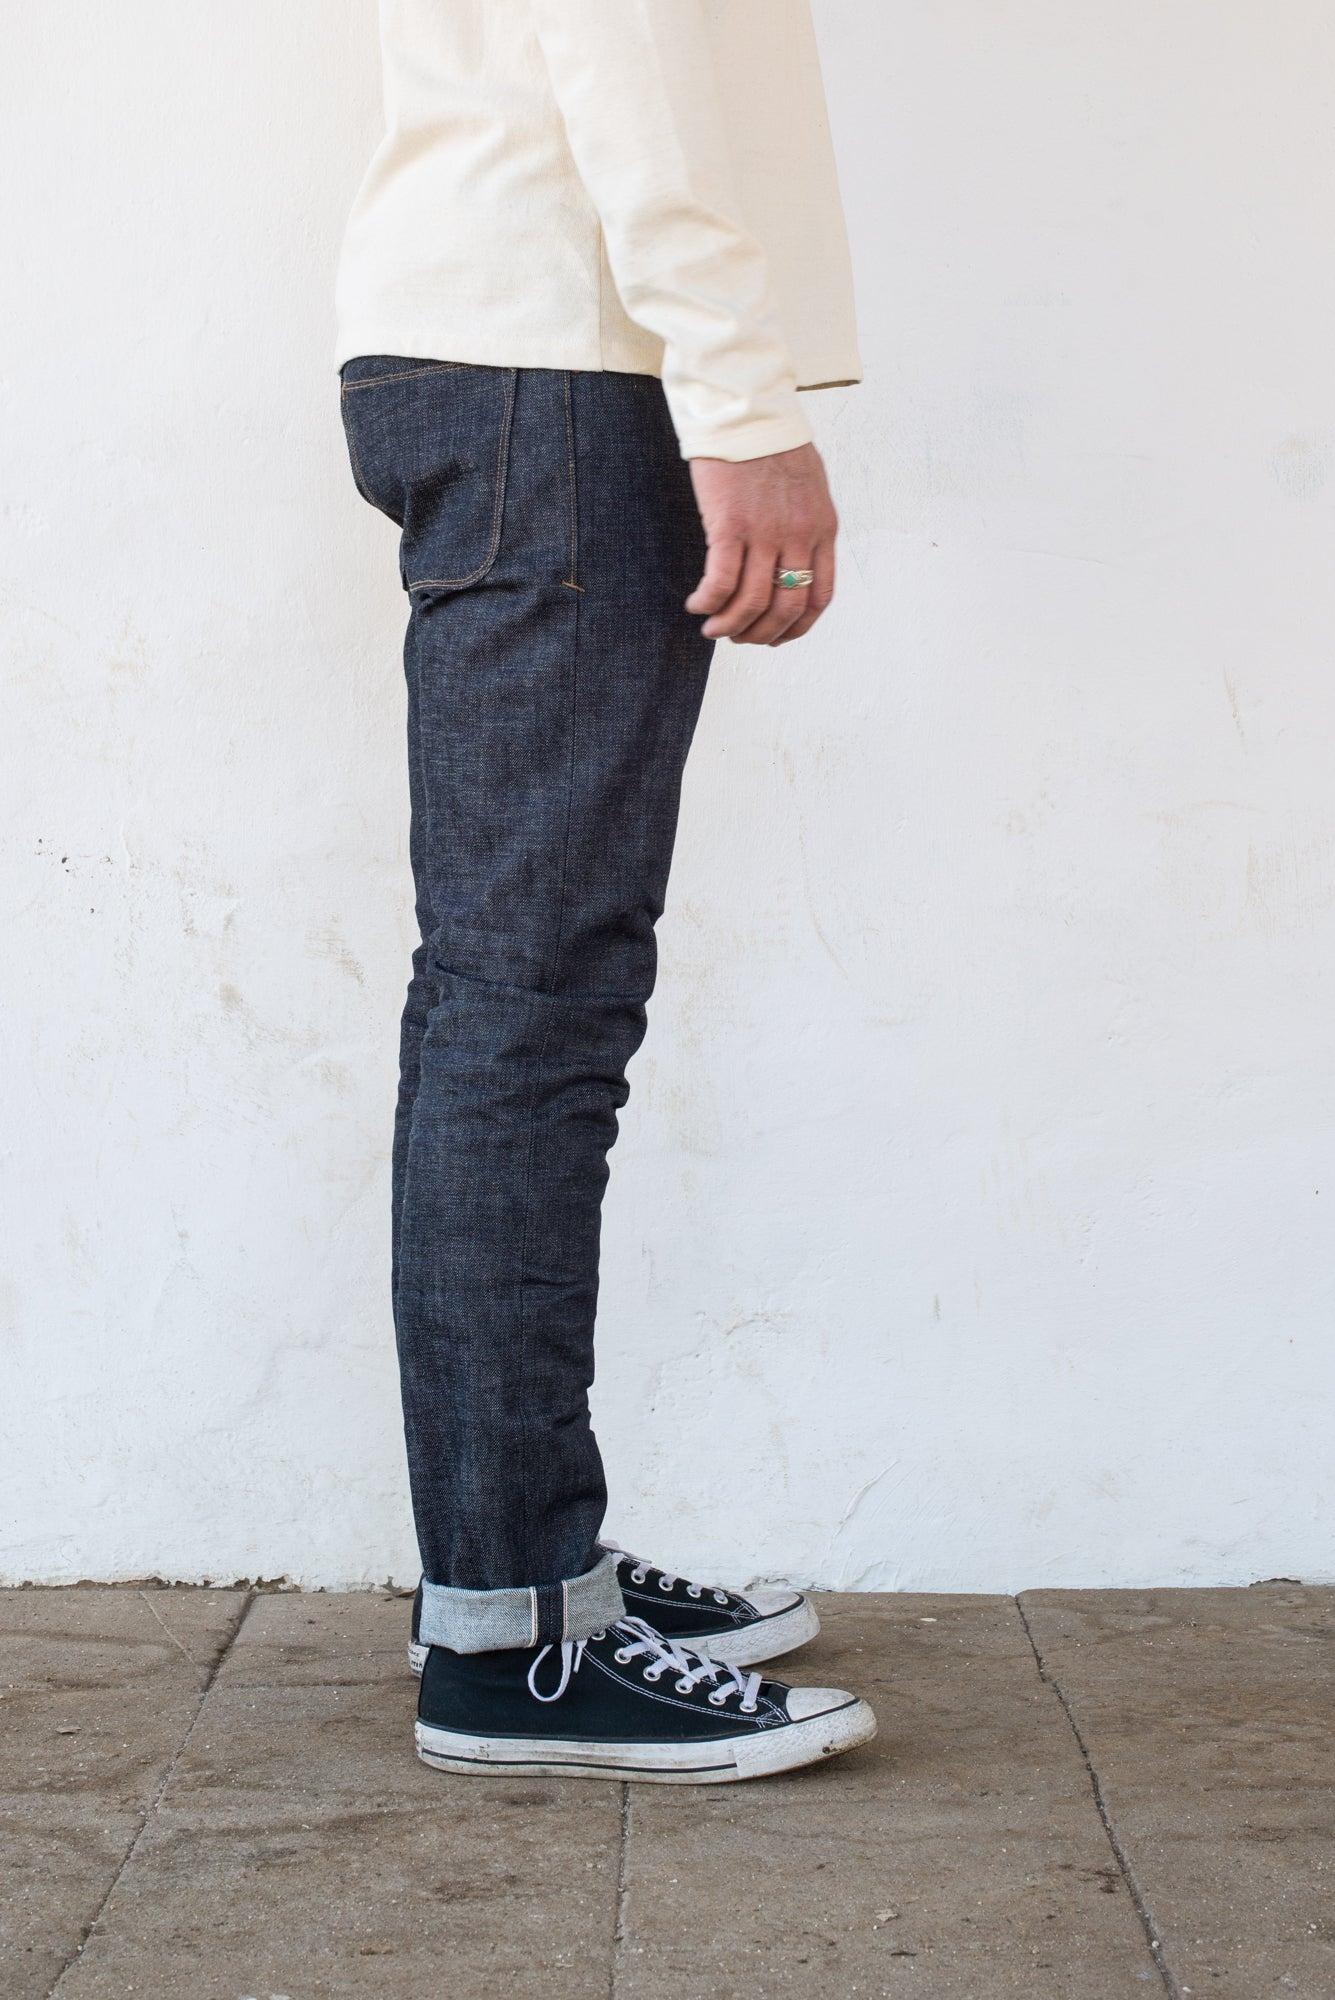 Freenote Cloth | Avila 13 oz Natural Indigo | $250